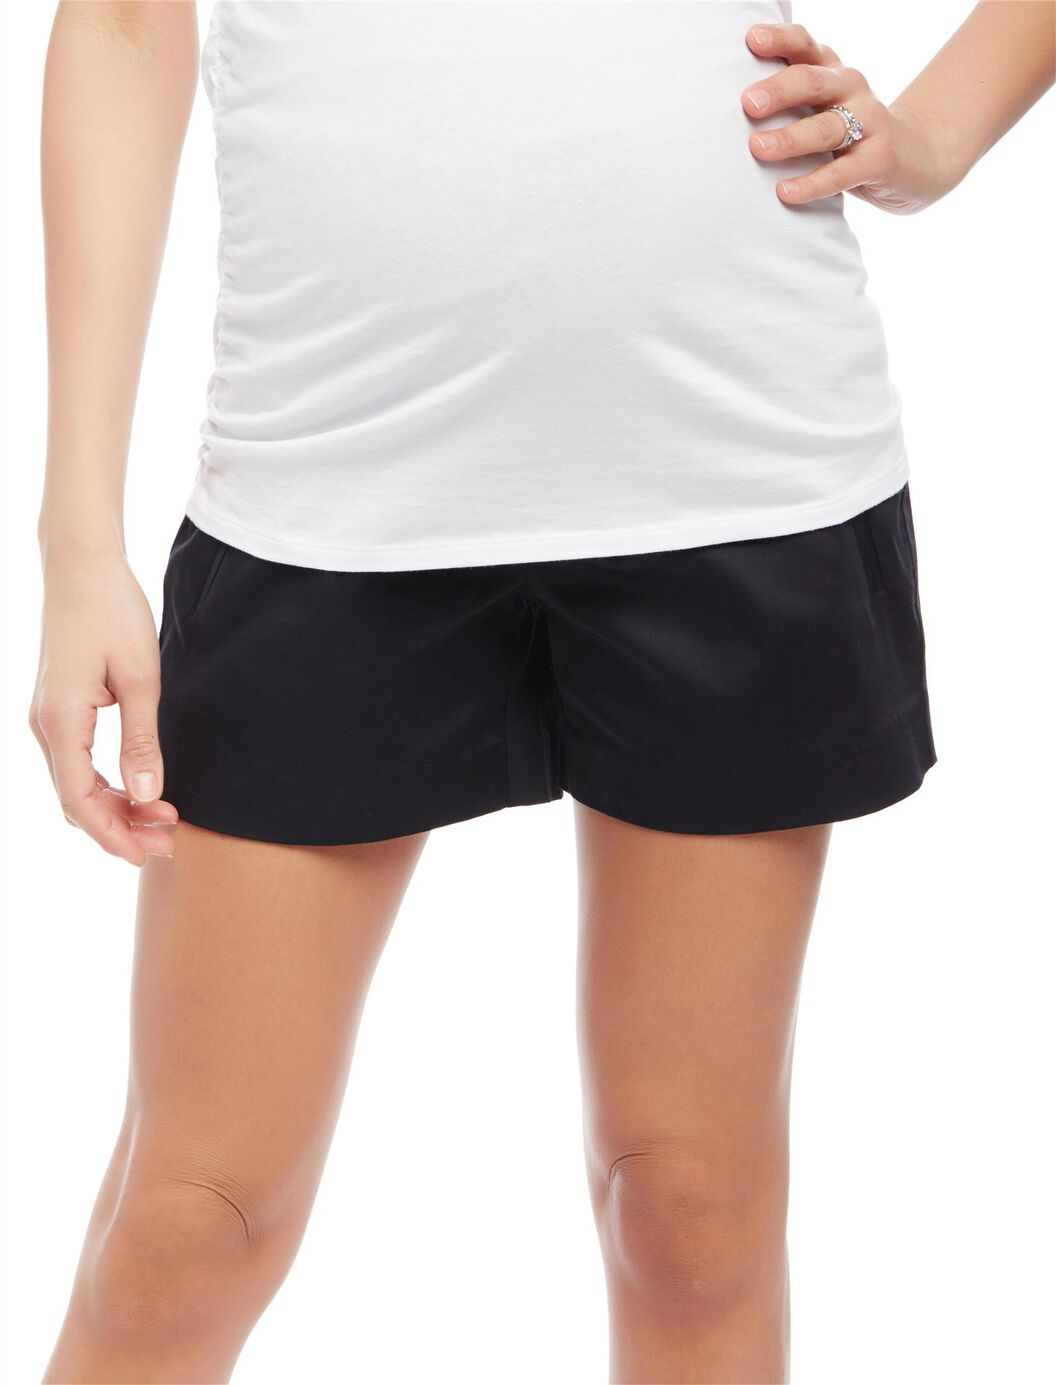 Secret Fit Belly Sateen Maternity Shorts- Solid at Motherhood Maternity in Victor, NY | Tuggl